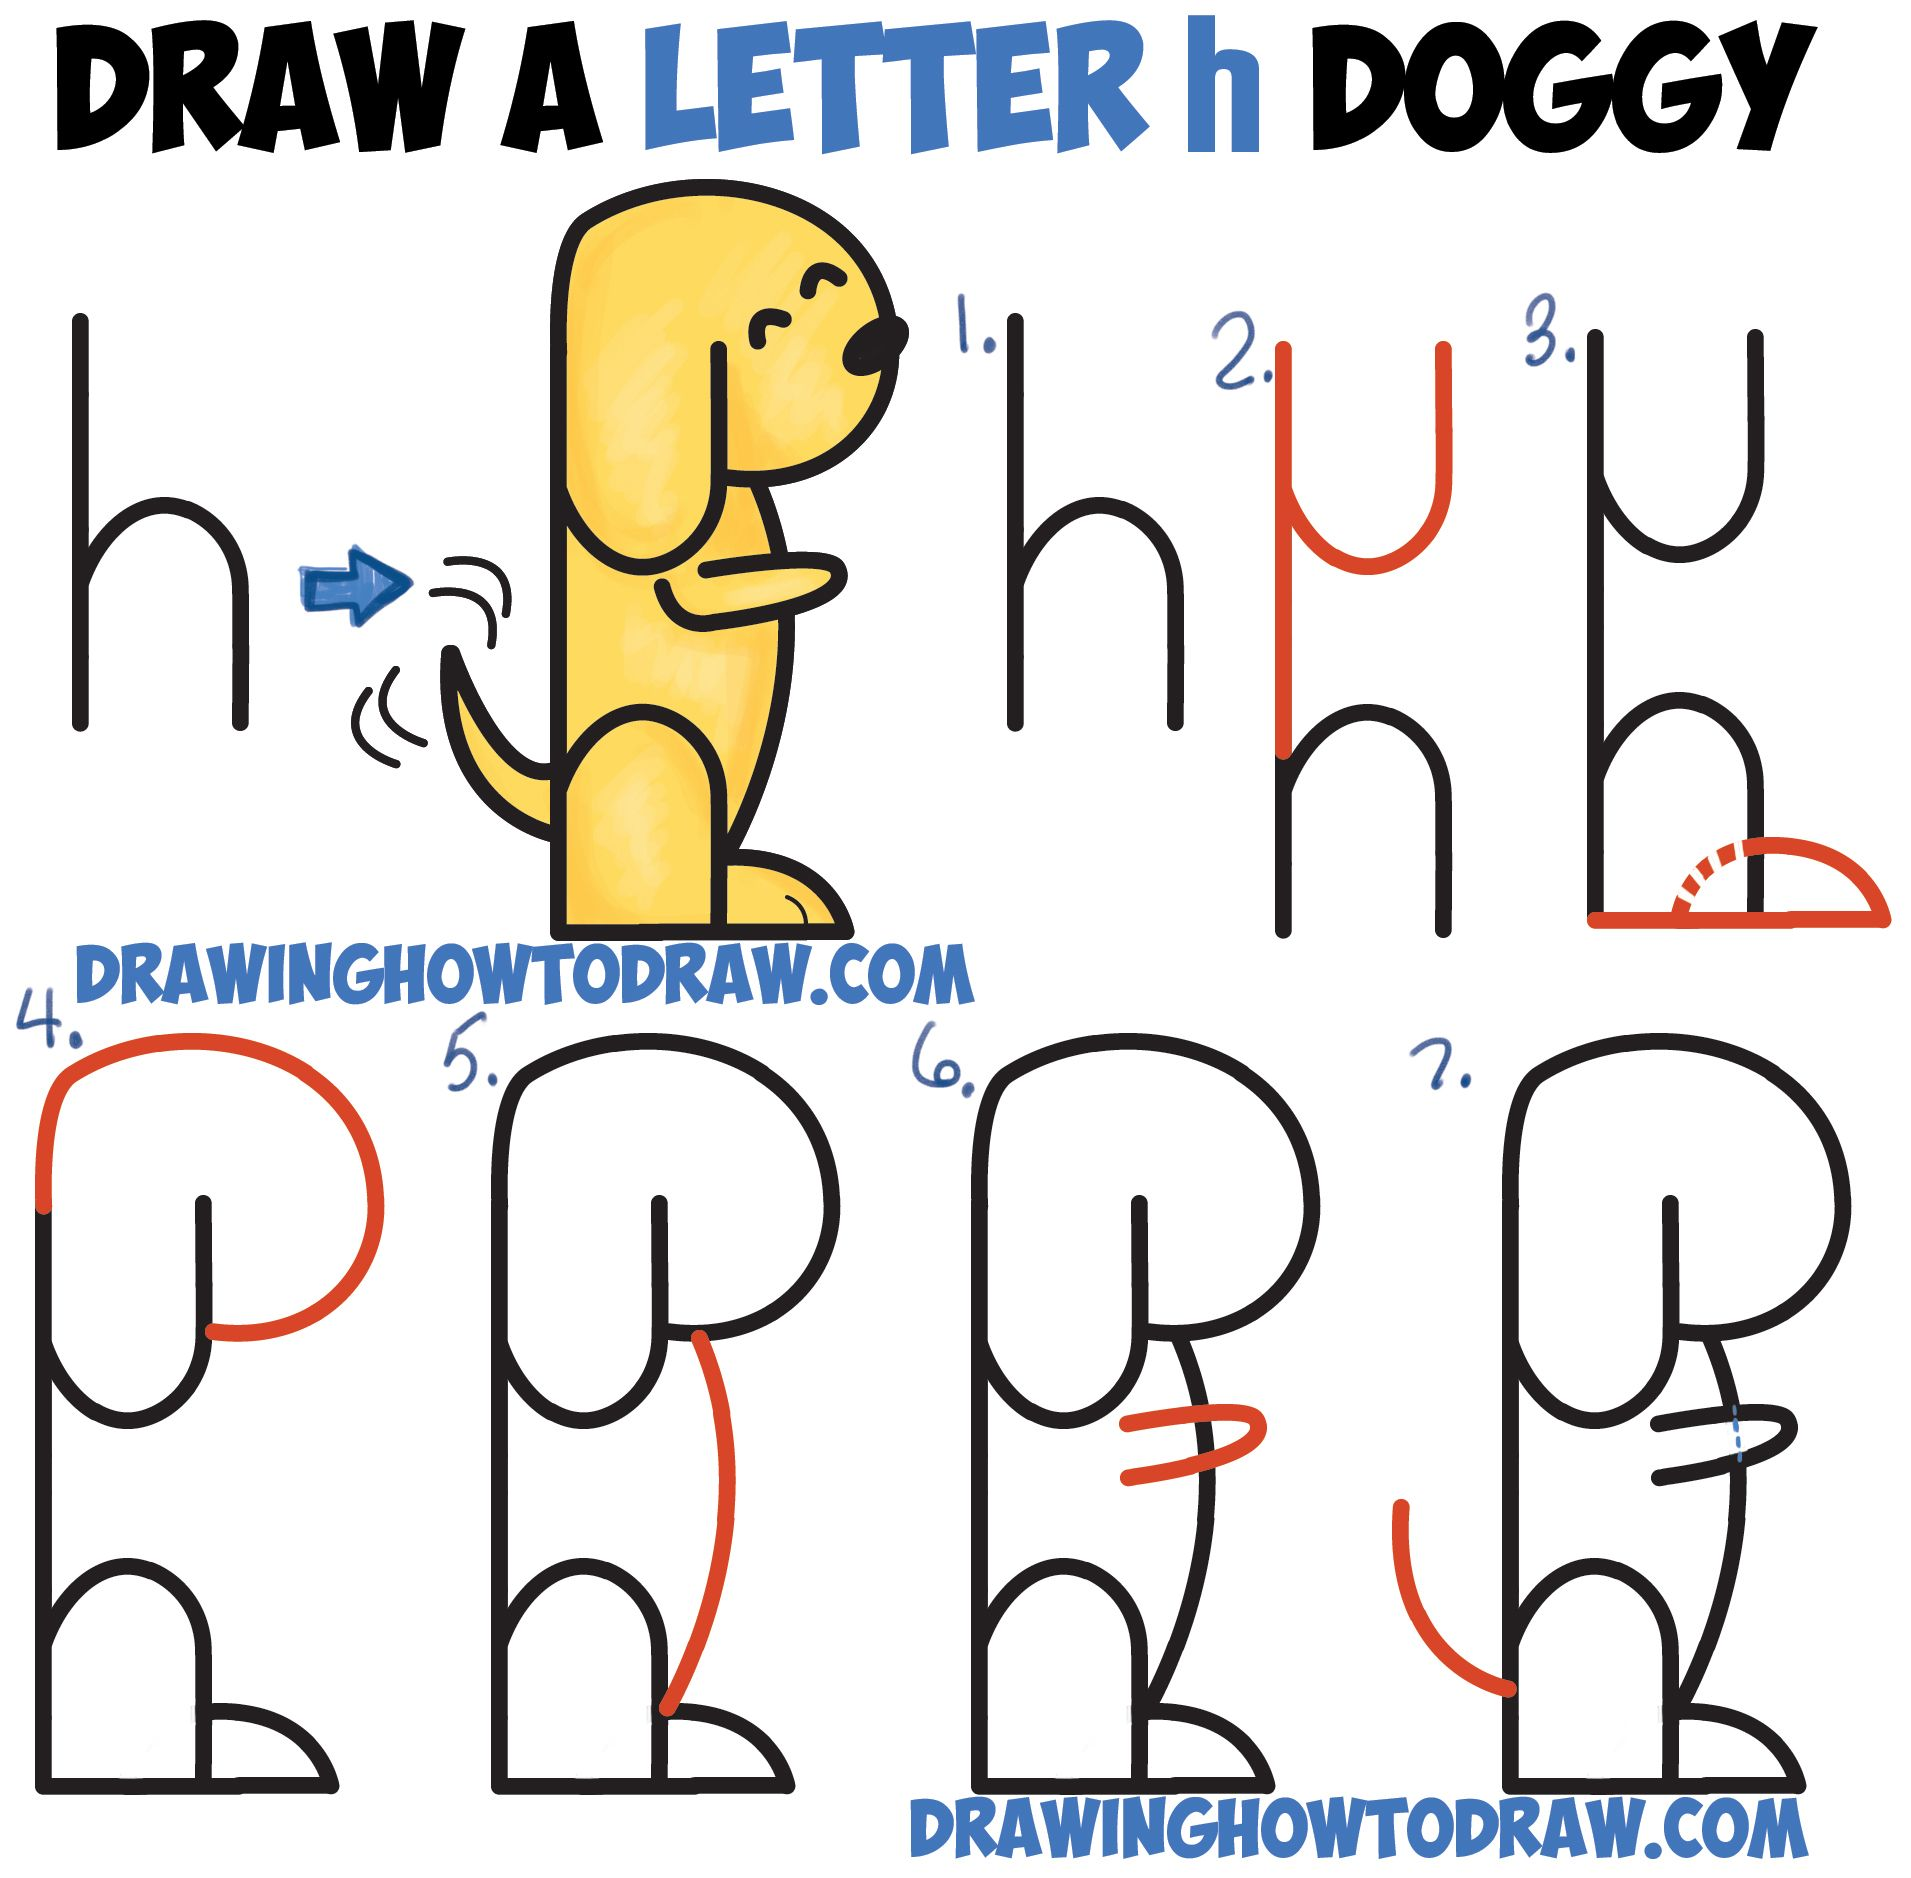 How to draw a cartoon dog begging from 2 letter 39 h 39 shapes for How to make cartoon drawings step by step